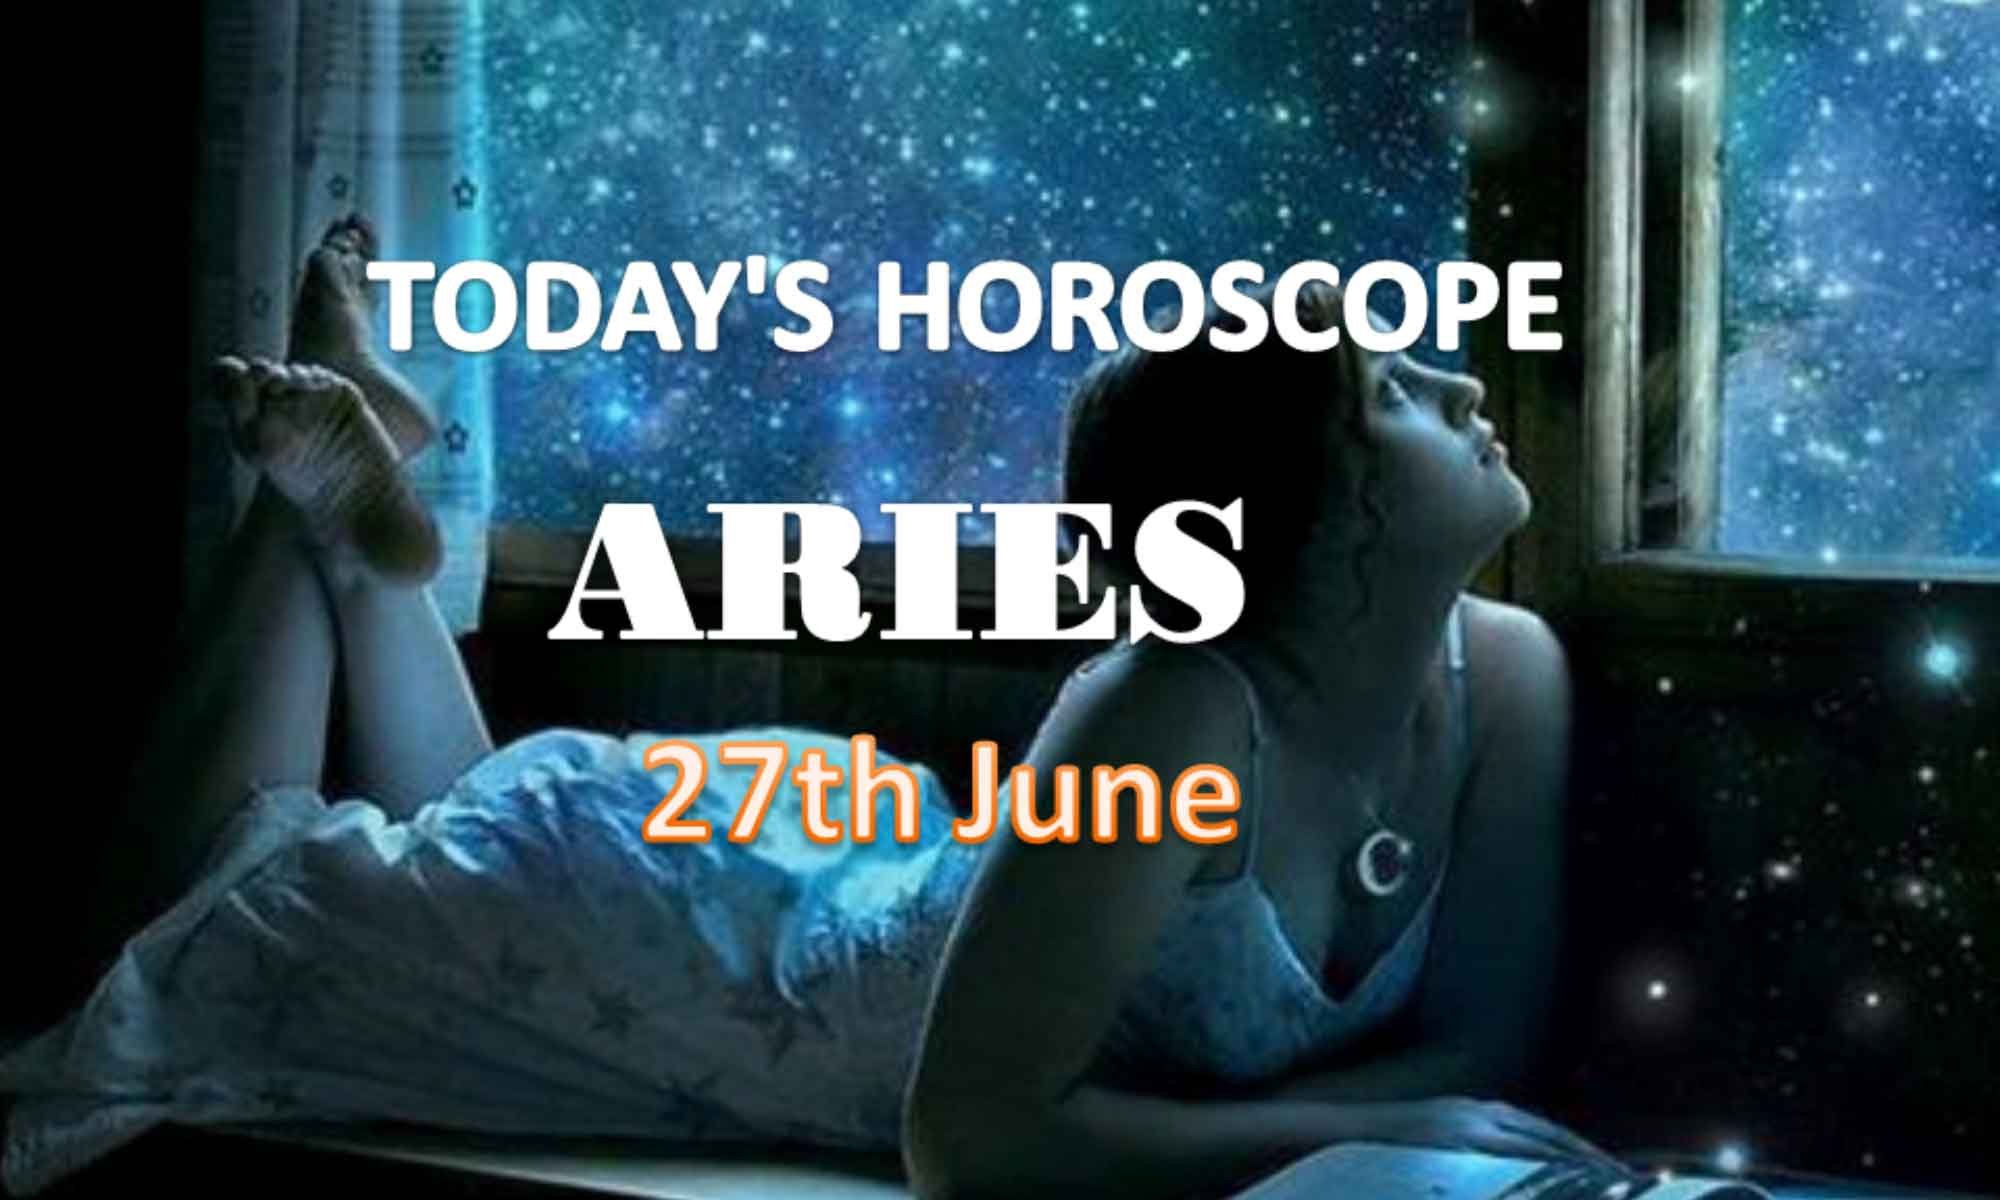 aries daily horoscope for today sunday june 27th 2021